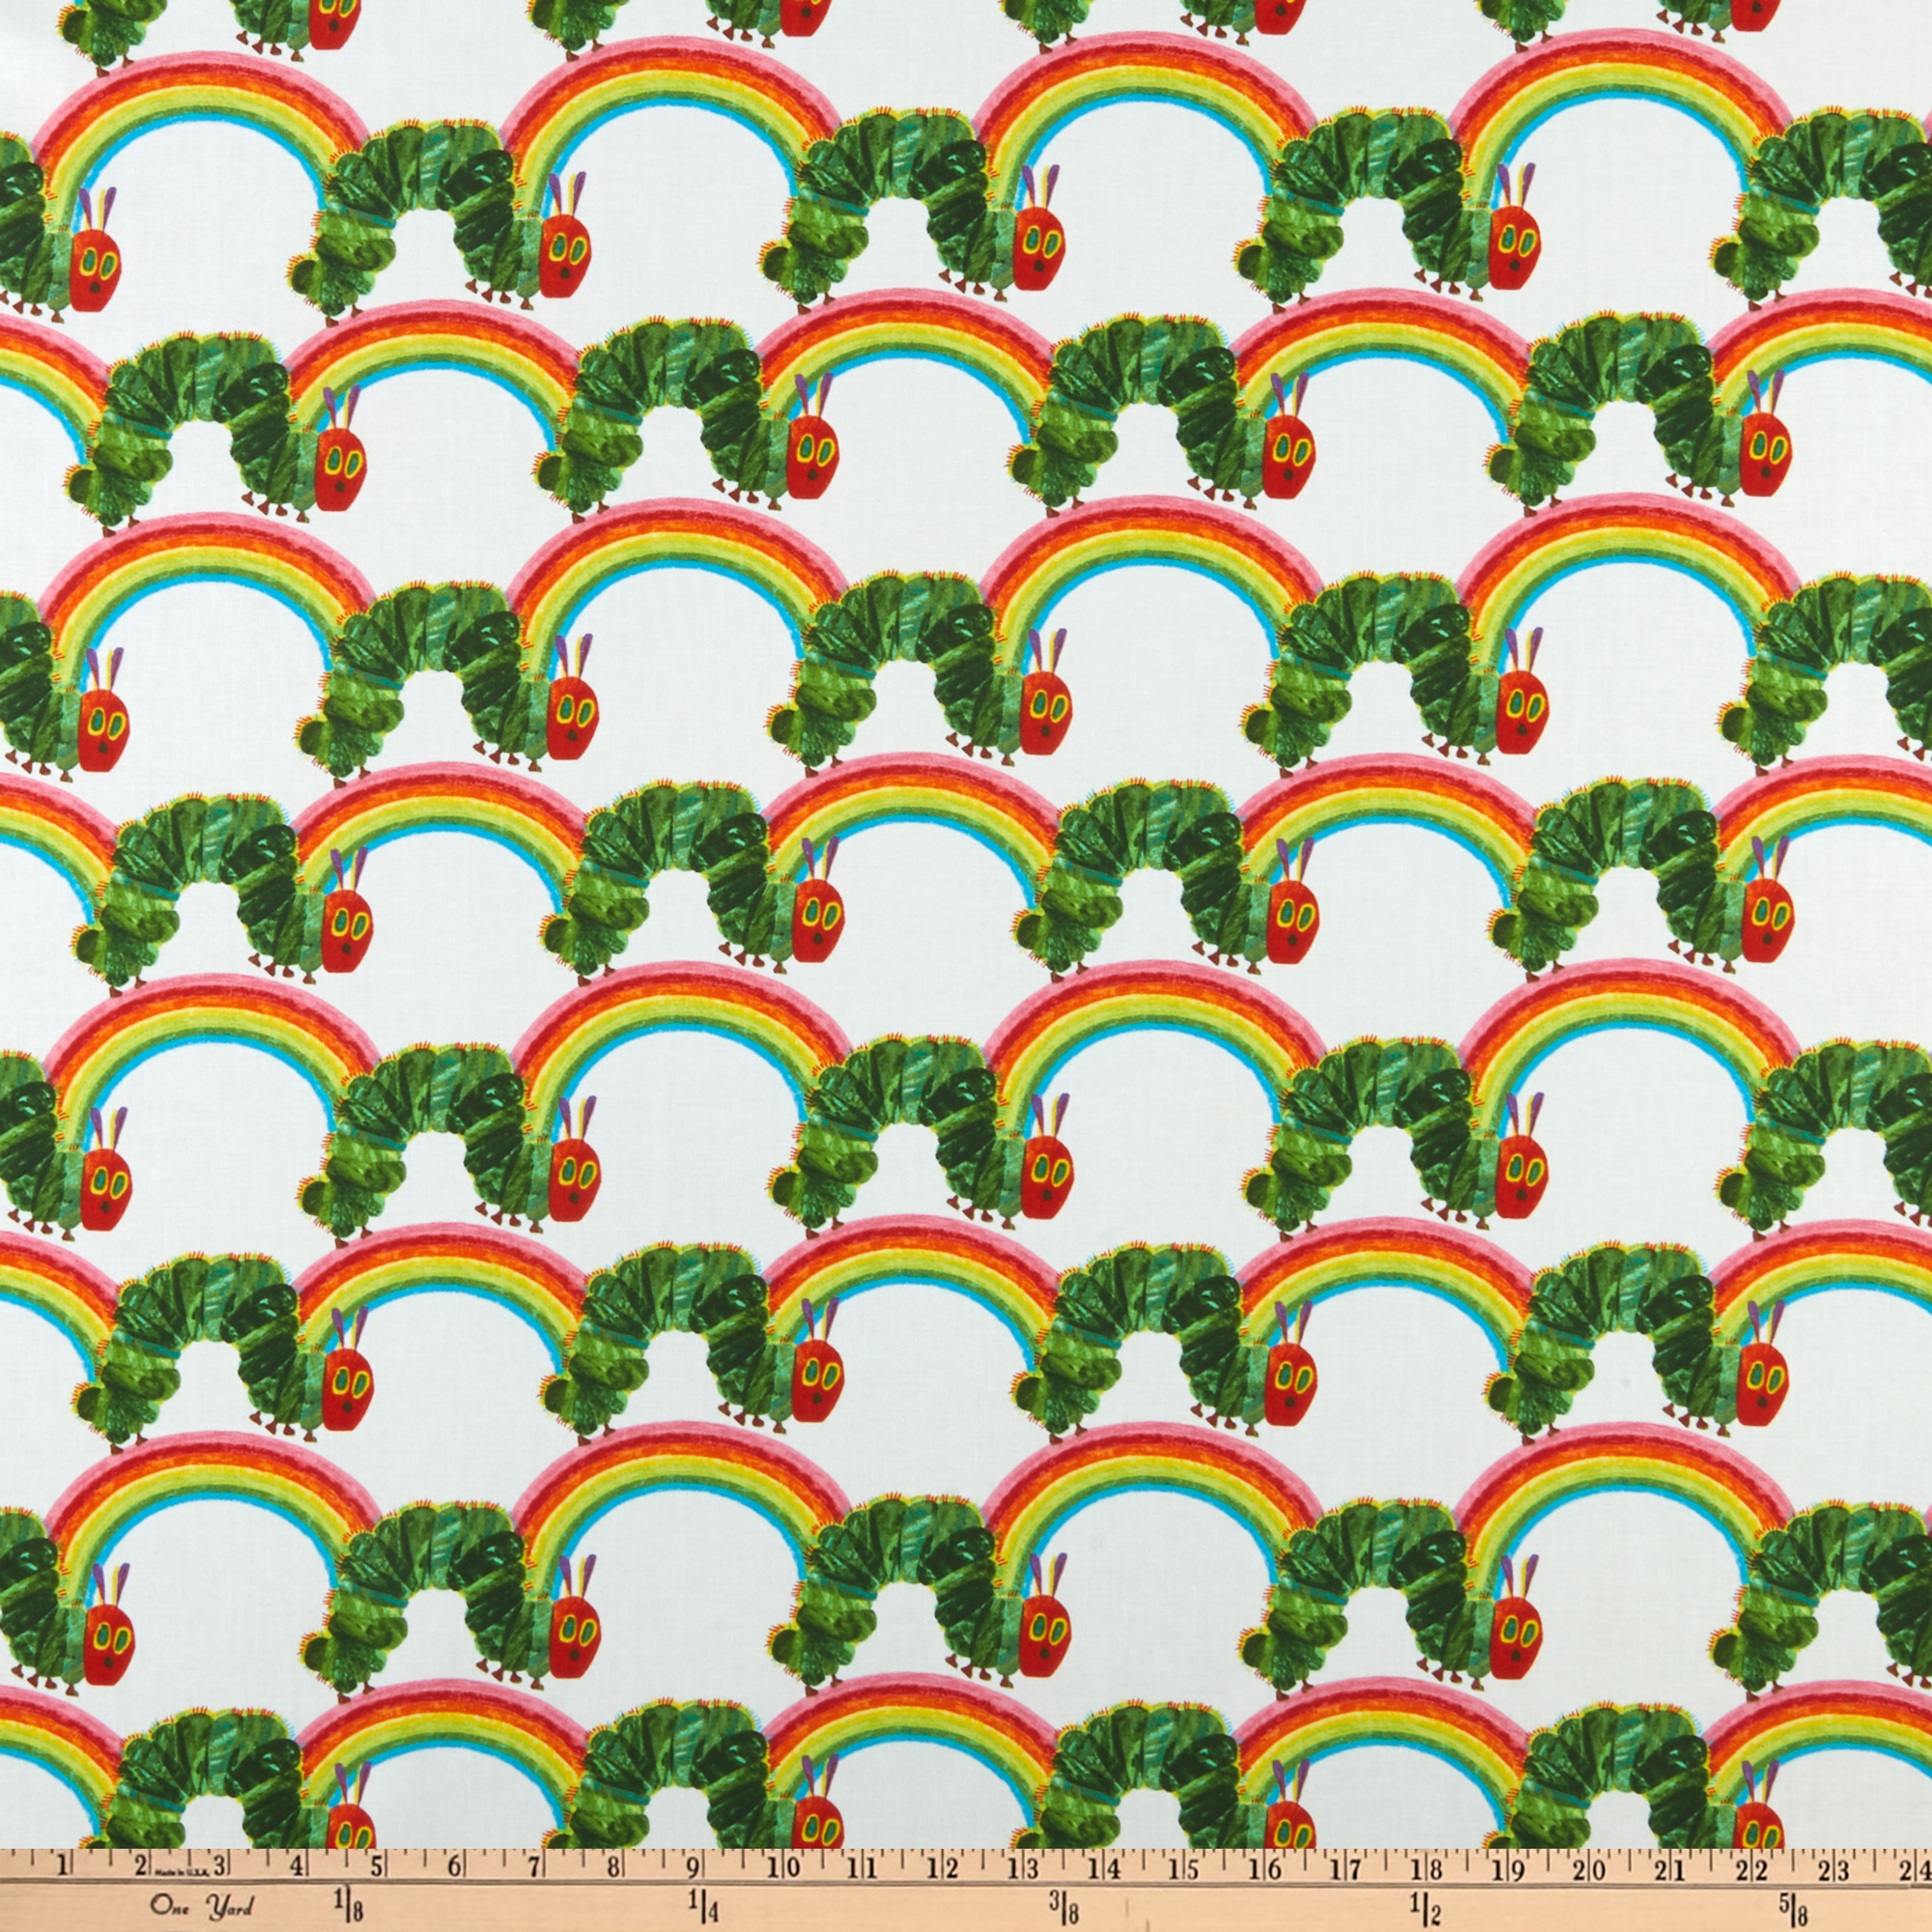 Andover The Very Hungry Caterpillar: Bright Rainbow White Fabric